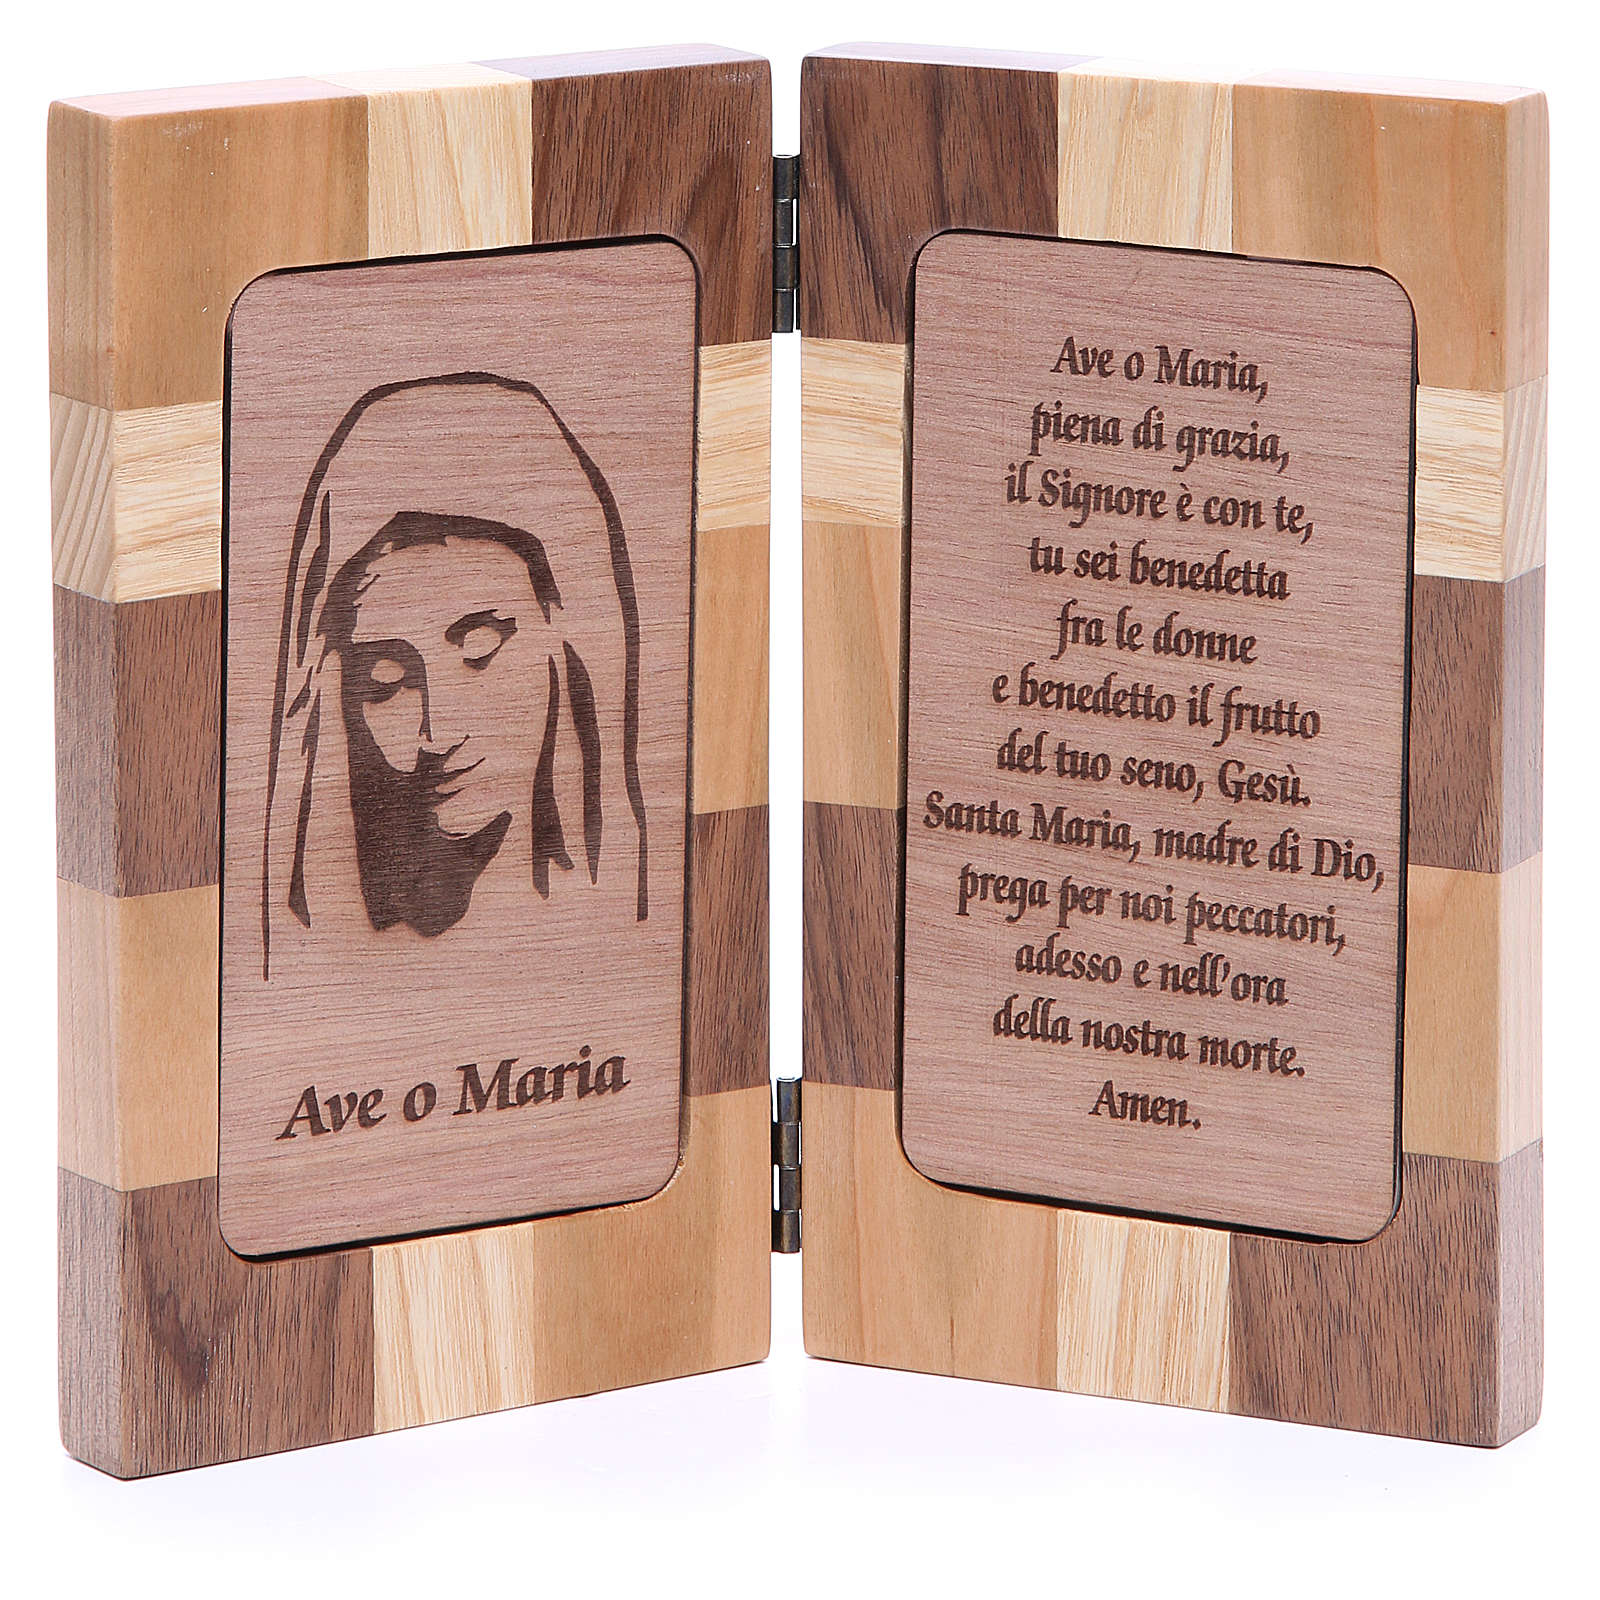 Hail Mary bas-relief with three types of wood 4